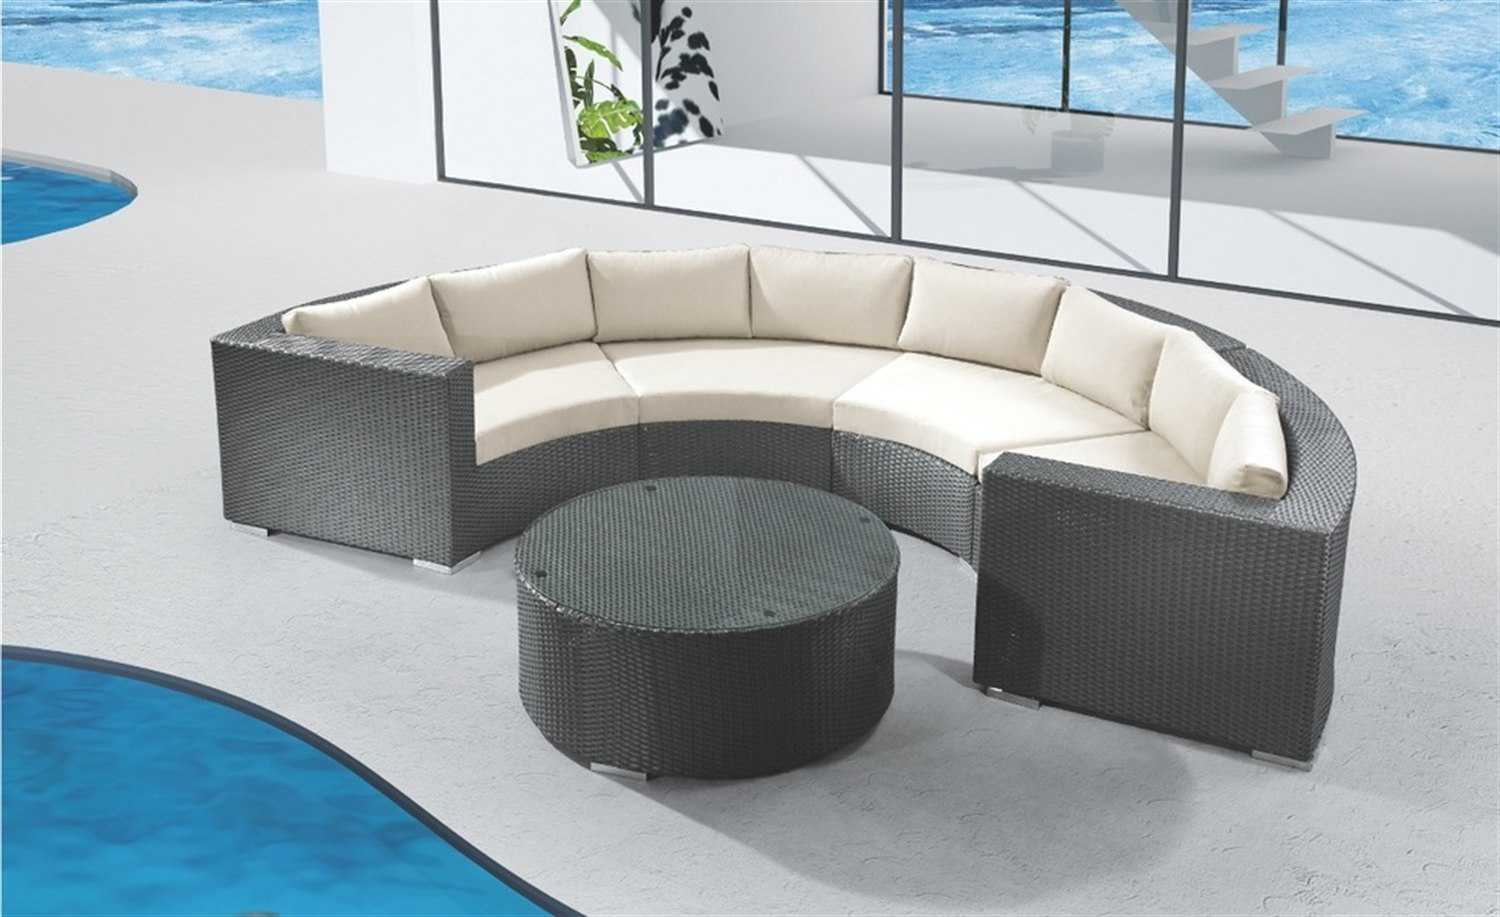 jaavan round cushion wicker sectional lounge set round. Black Bedroom Furniture Sets. Home Design Ideas